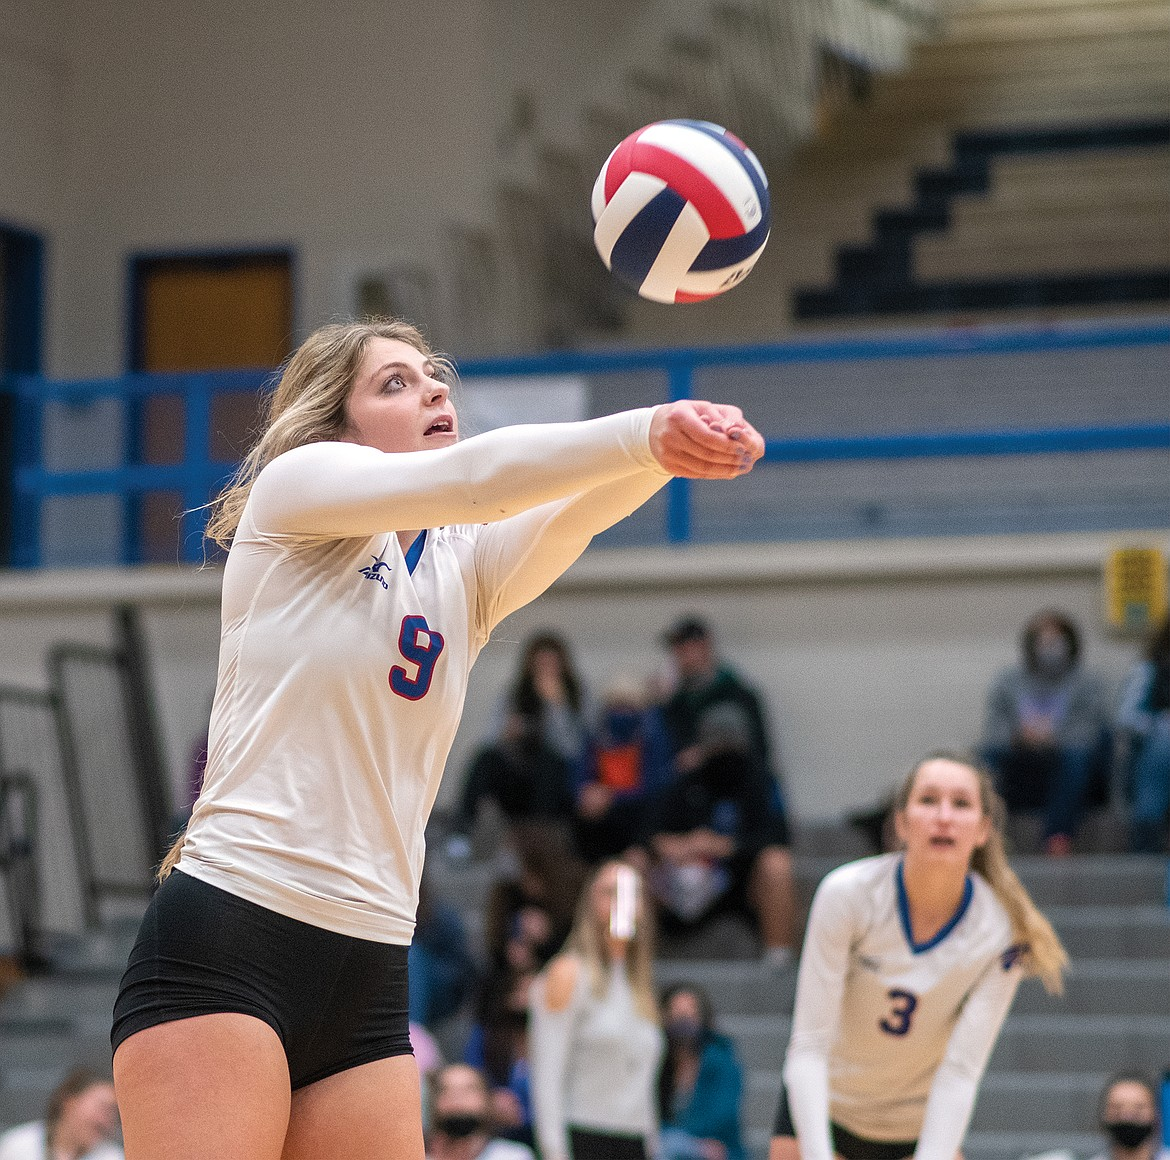 Hannah Schweikert bumps the ball in the divisionals semifinal match against Whitefish on Friday. (Chris Peterson/Hungry Horse News)